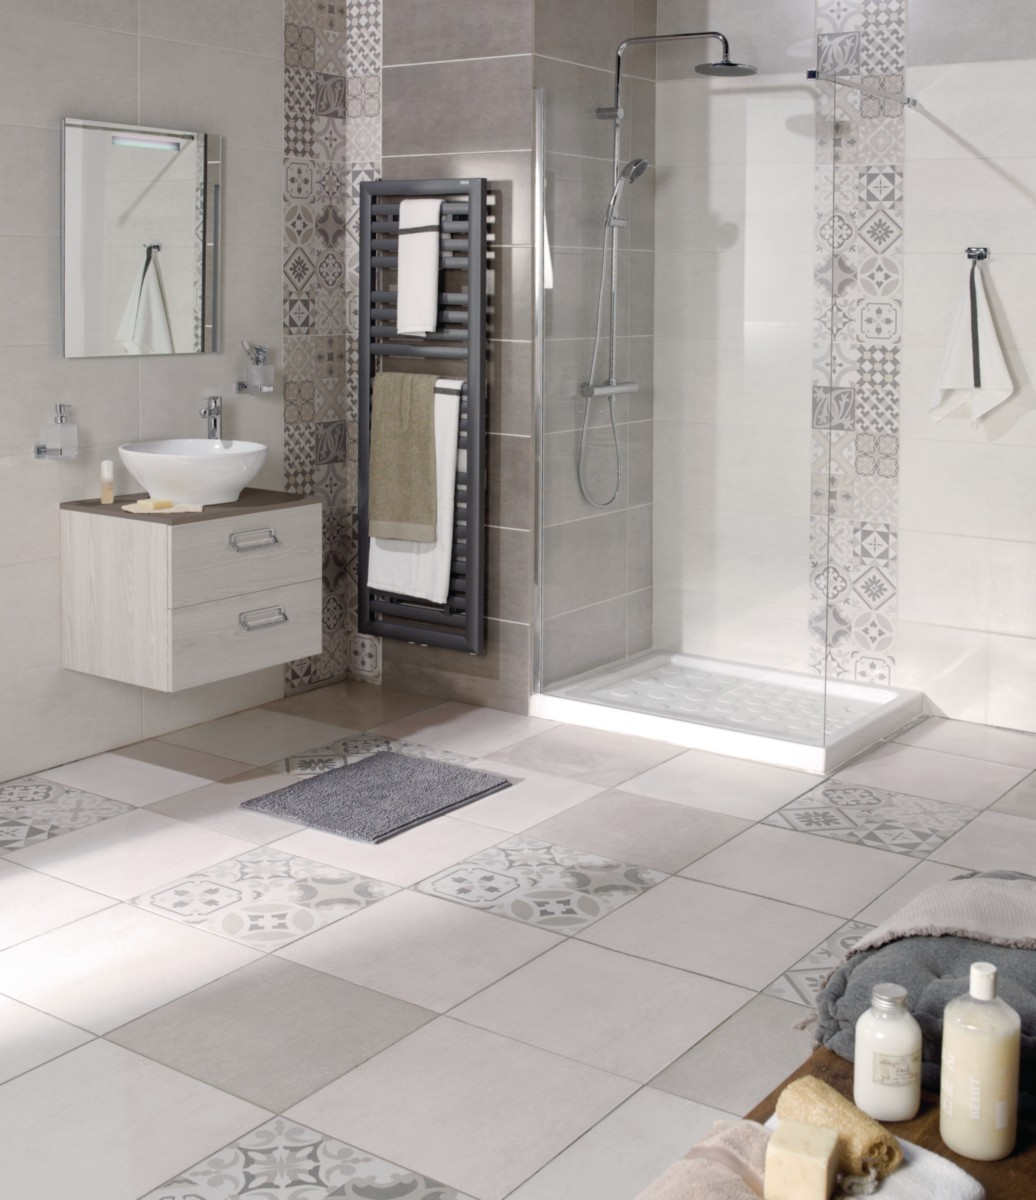 Salle de bain carrelage salle de bain point p moderne for Carrelage cuisine point p